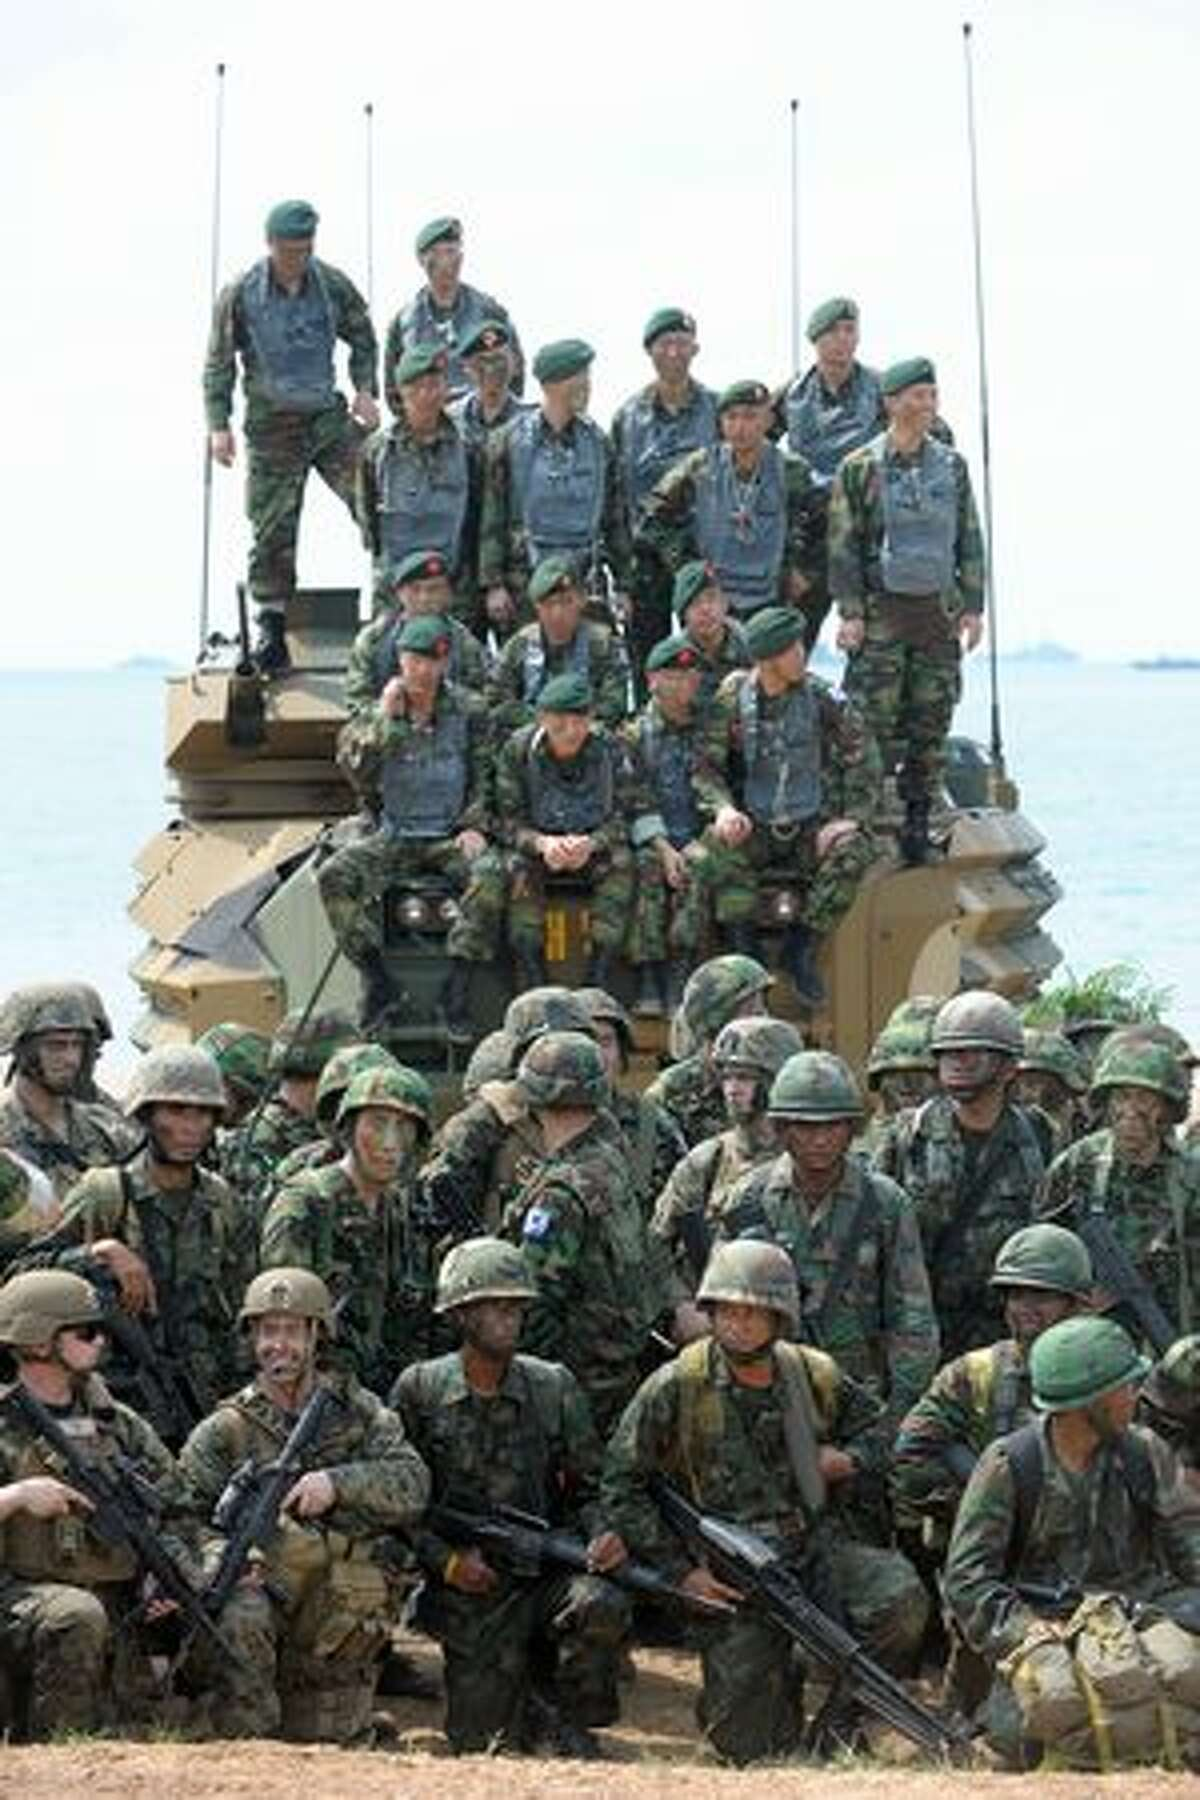 Thai, U.S. and South Korean marines participate in the annual combined military exercise Cobra Gold 2010 at a Navy base in Rayong province, Thailand, on Feb. 4, 2010.